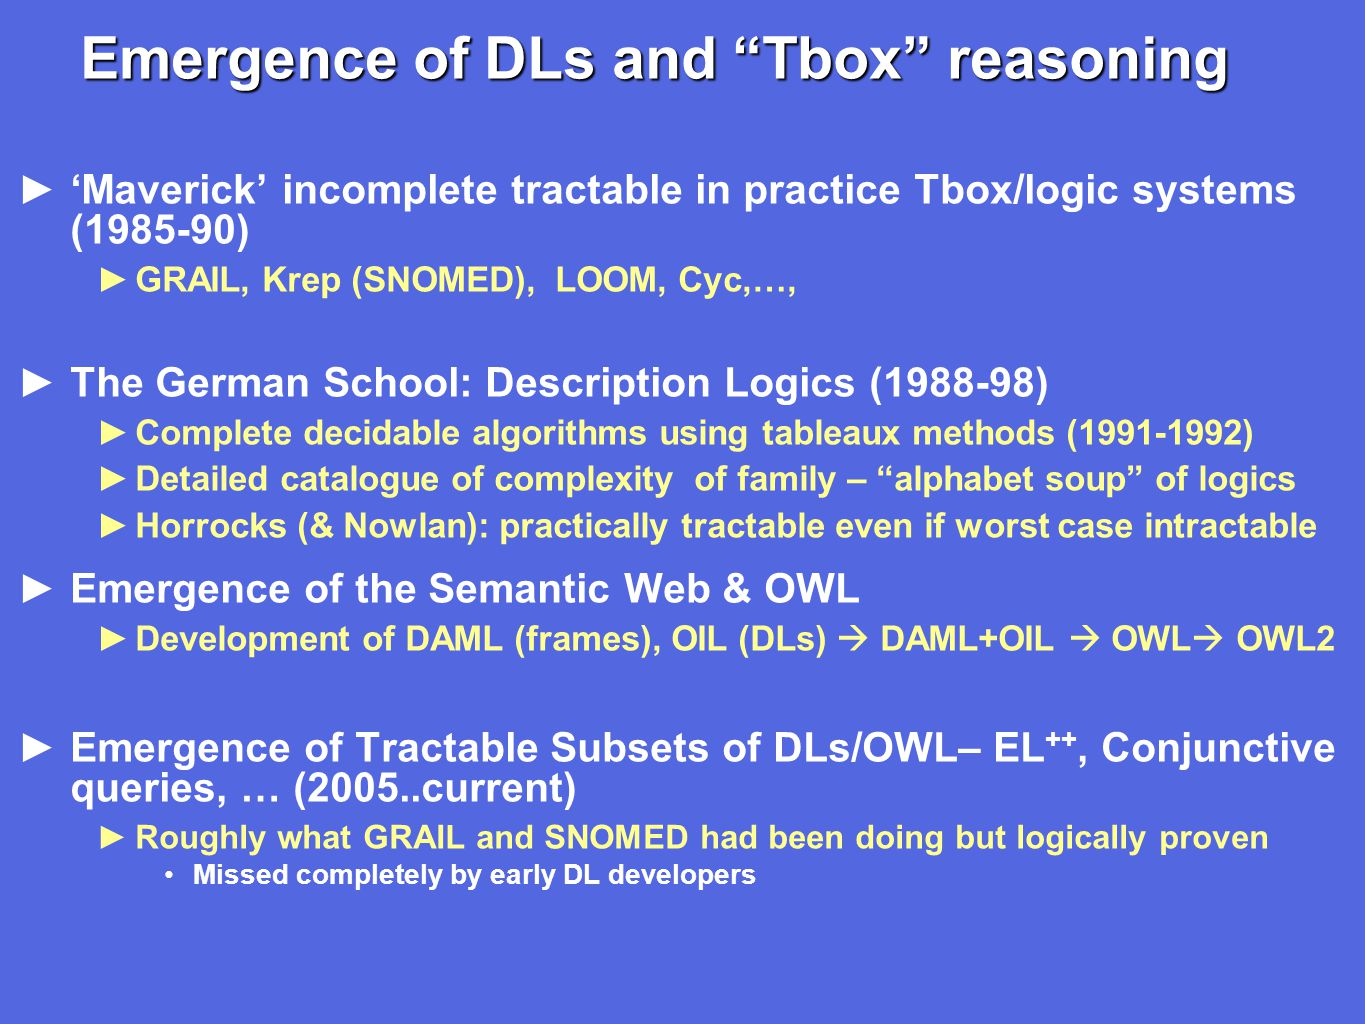 Emergence of DLs and Tbox reasoning ►'Maverick' incomplete tractable in practice Tbox/logic systems (1985-90) ►GRAIL, Krep (SNOMED), LOOM, Cyc,…, ►The German School: Description Logics (1988-98) ►Complete decidable algorithms using tableaux methods (1991-1992) ►Detailed catalogue of complexity of family – alphabet soup of logics ►Horrocks (& Nowlan): practically tractable even if worst case intractable ►Emergence of the Semantic Web & OWL ►Development of DAML (frames), OIL (DLs)  DAML+OIL  OWL  OWL2 ►Emergence of Tractable Subsets of DLs/OWL– EL ++, Conjunctive queries, … (2005..current) ►Roughly what GRAIL and SNOMED had been doing but logically proven Missed completely by early DL developers